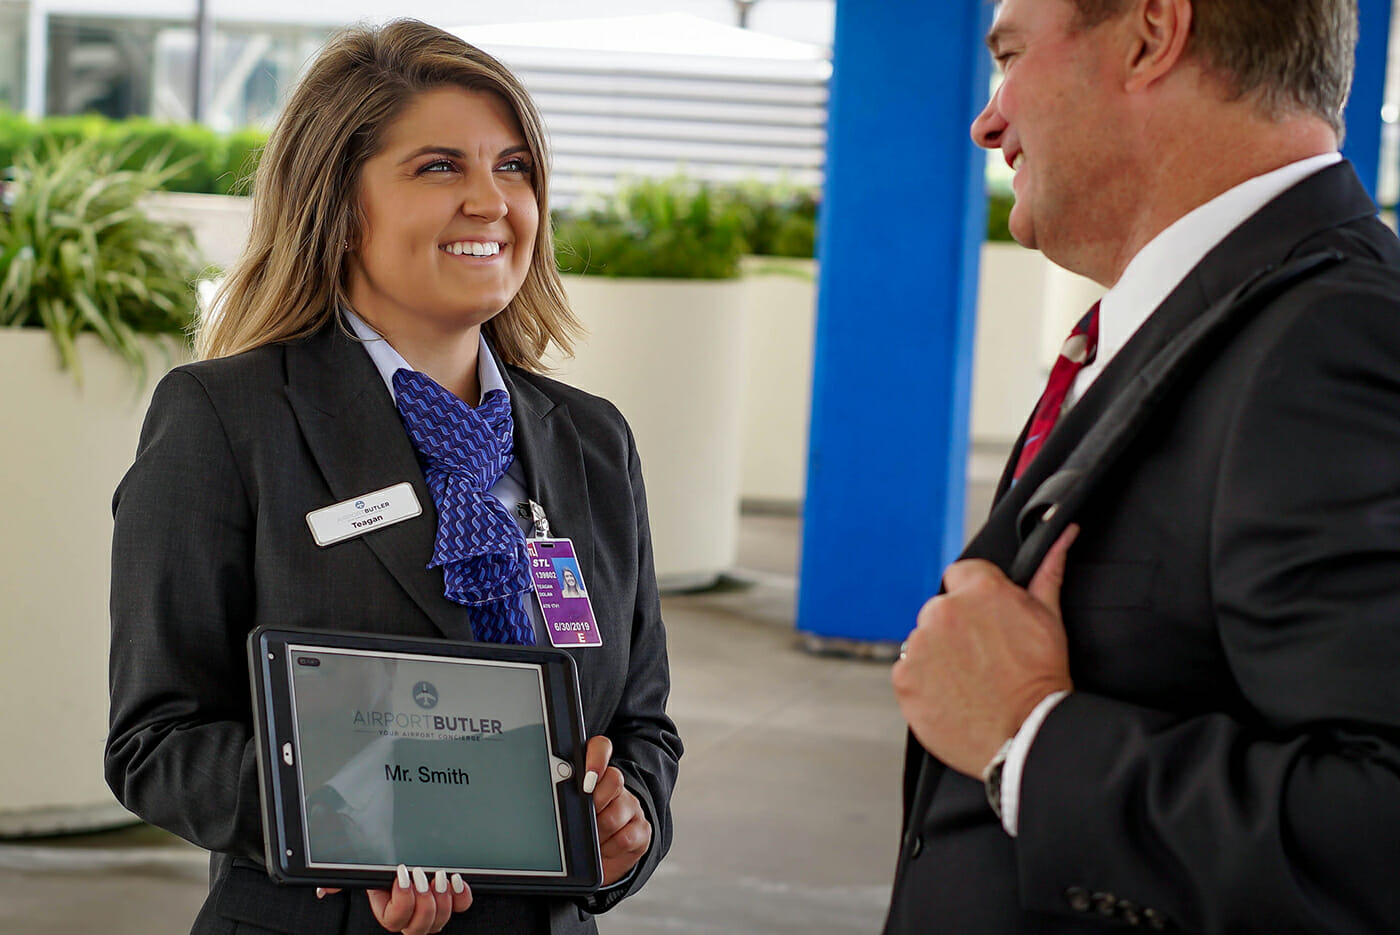 To take the stress out of airports, hire an Airport Butler to take care of your traveling party